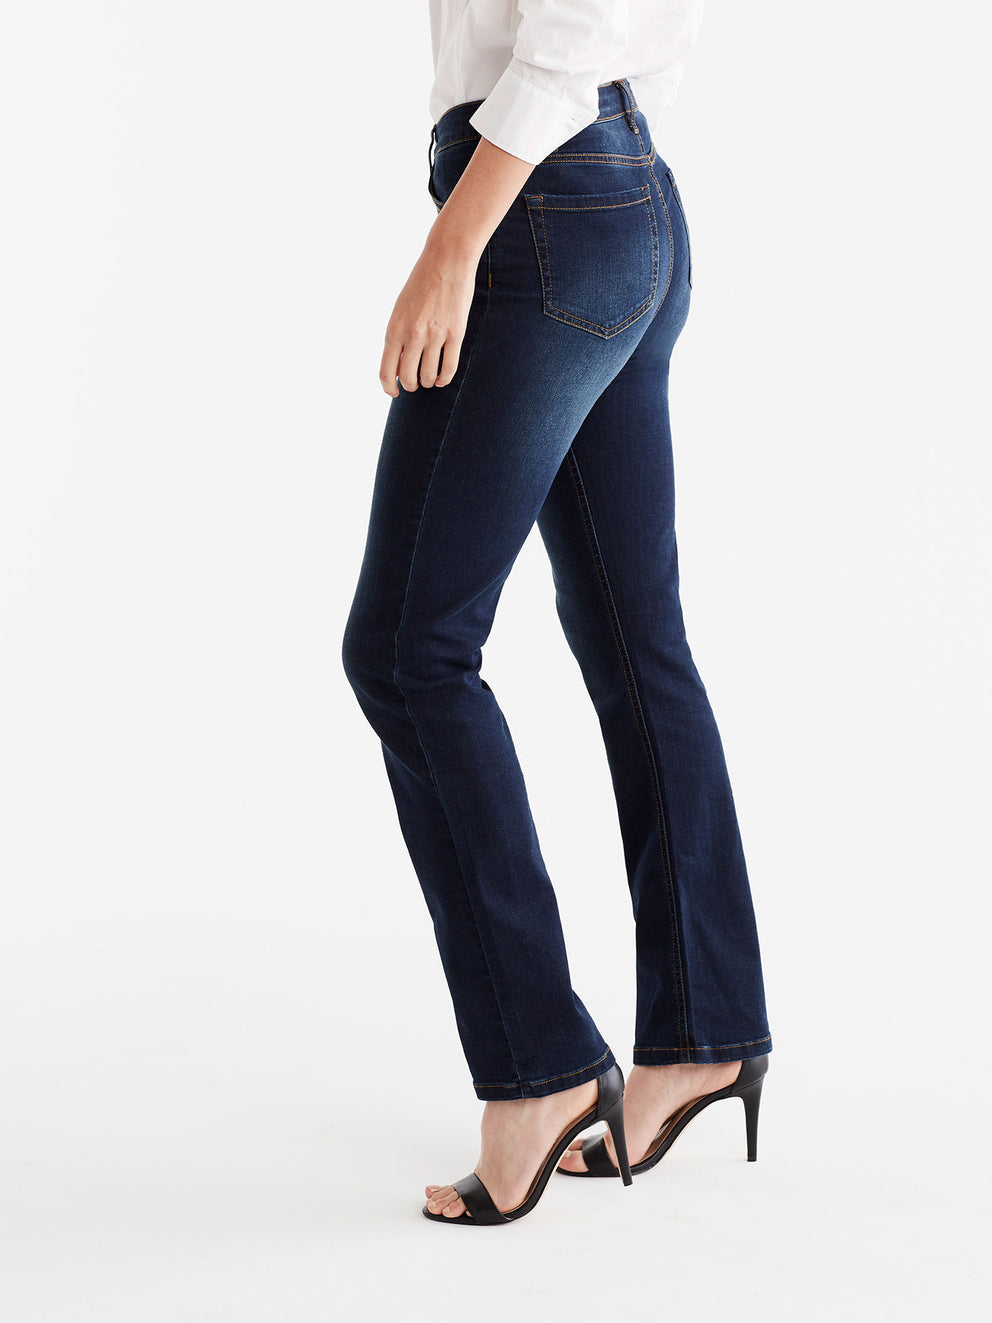 The Jones New York Lexington Indigo Wash Straight Leg Jeans, Plus Size in color Indigo Wash - Image Position 5